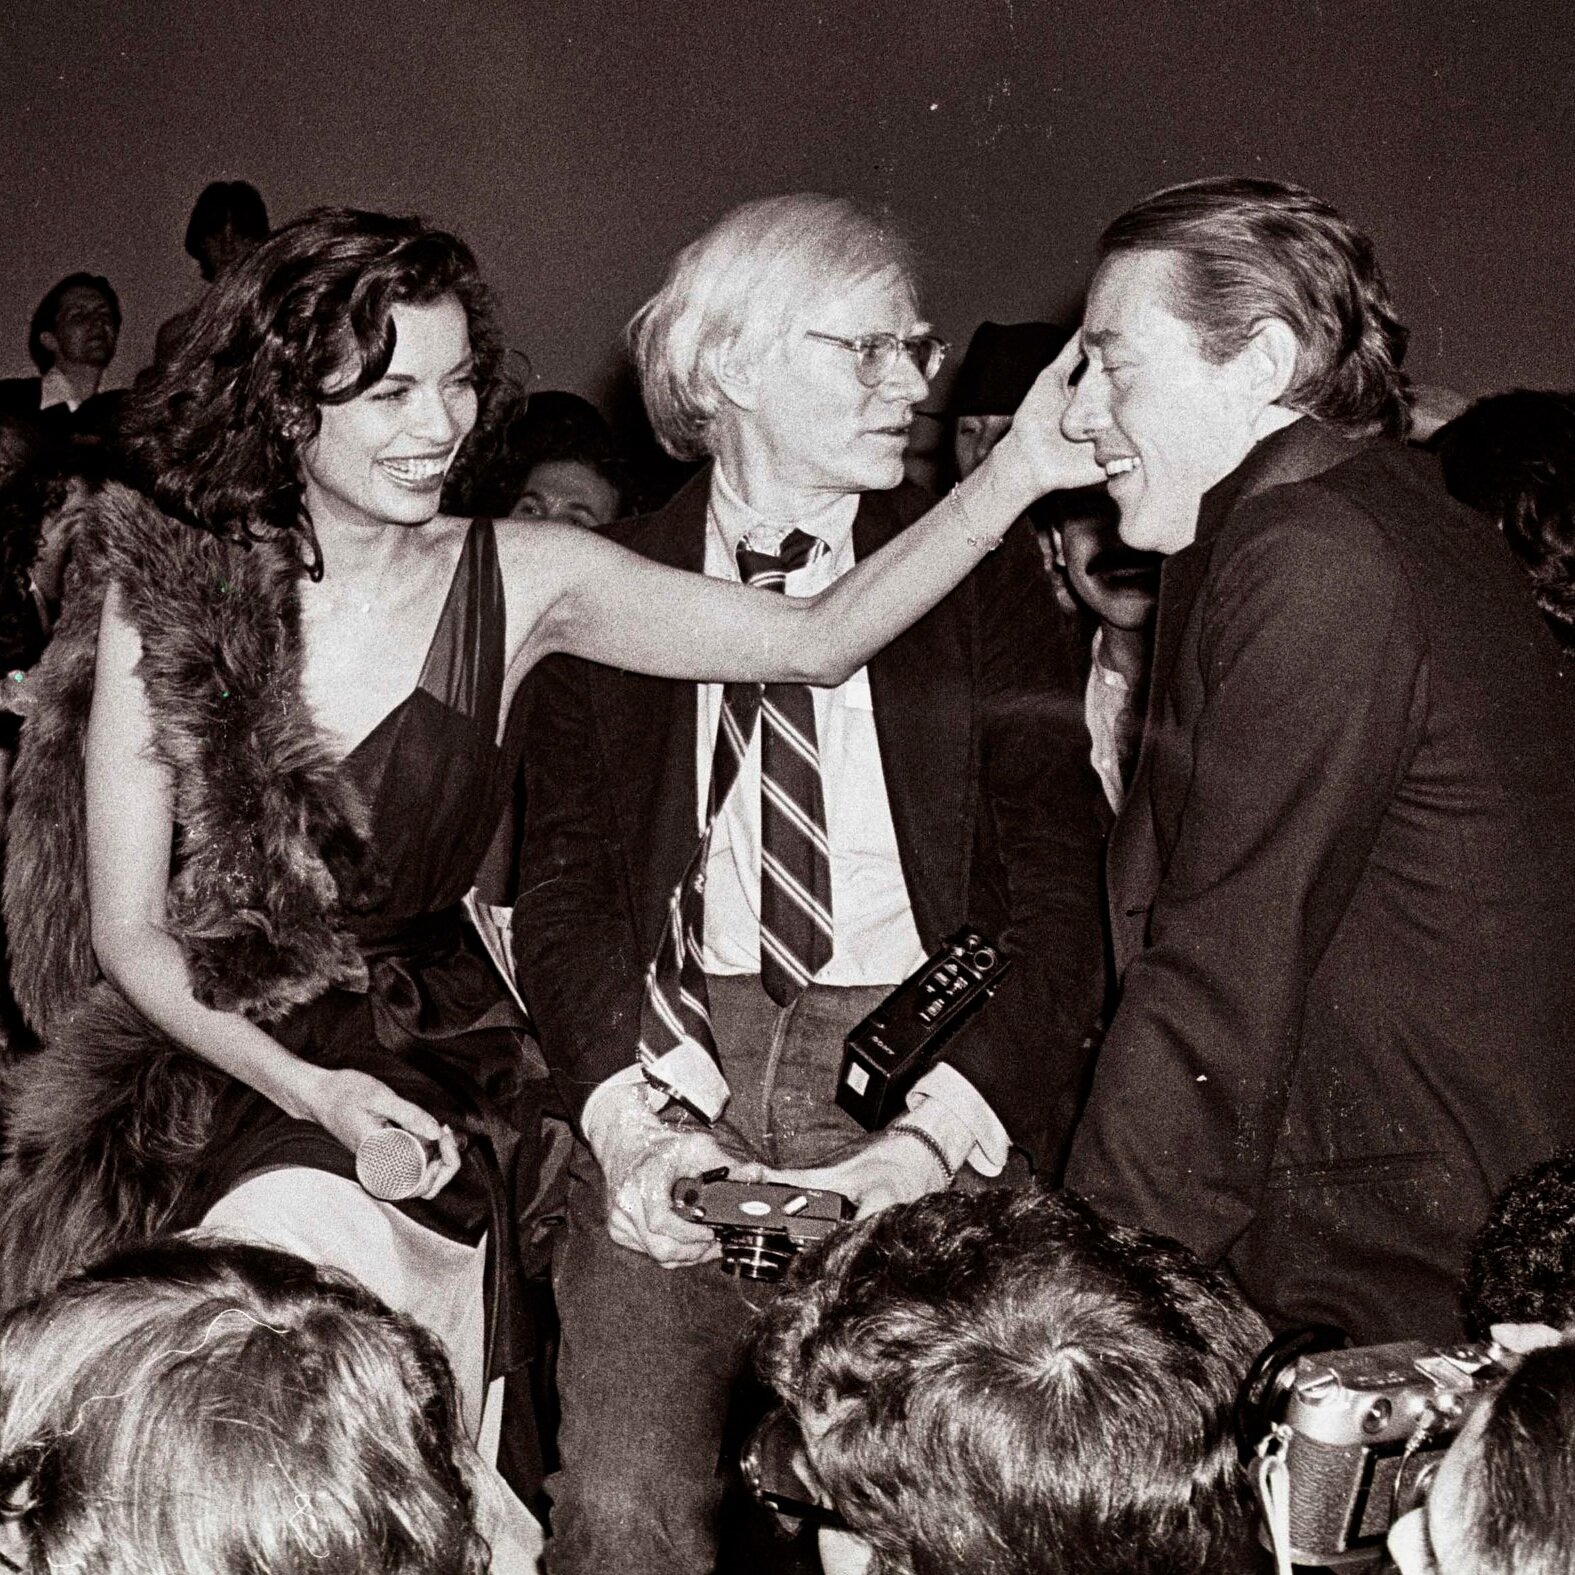 Studio 54: A new film brings back the highs and lows